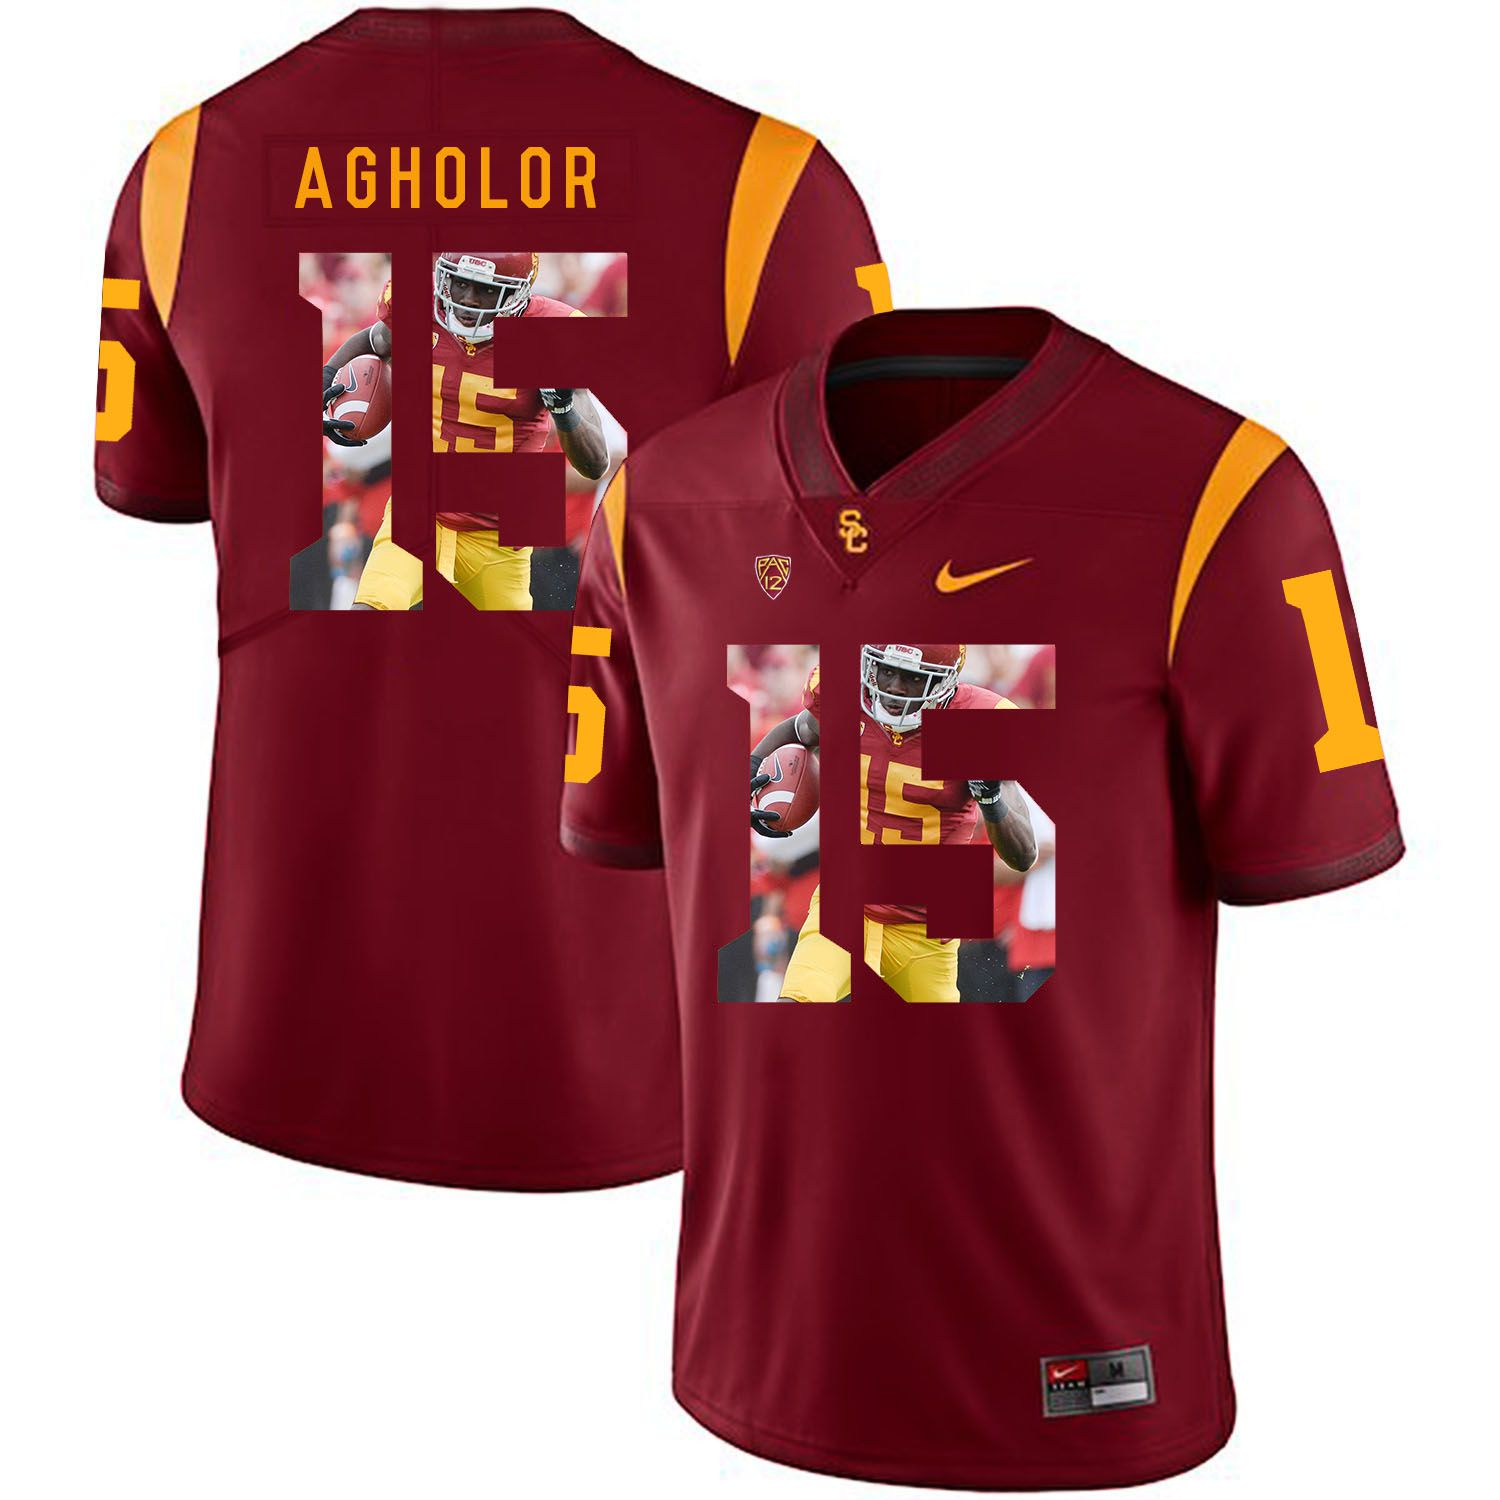 Men USC Trojans 15 Agholor Red Fashion Edition Customized NCAA Jerseys